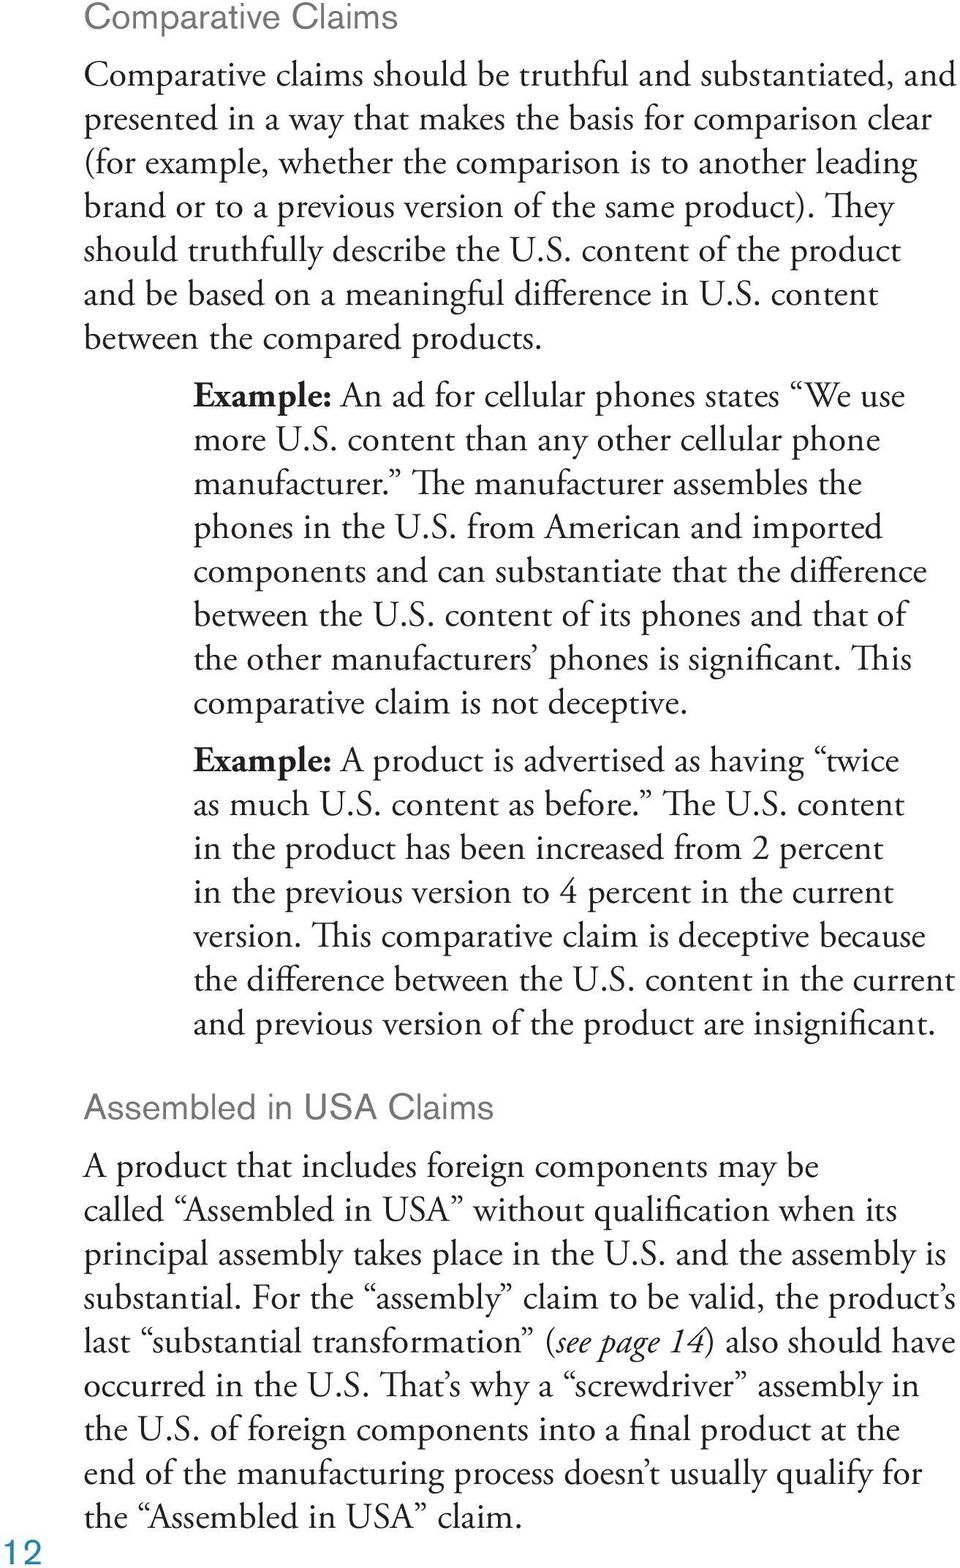 Example: An ad for cellular phones states We use more U.S. content than any other cellular phone manufacturer. The manufacturer assembles the phones in the U.S. from American and imported components and can substantiate that the difference between the U.